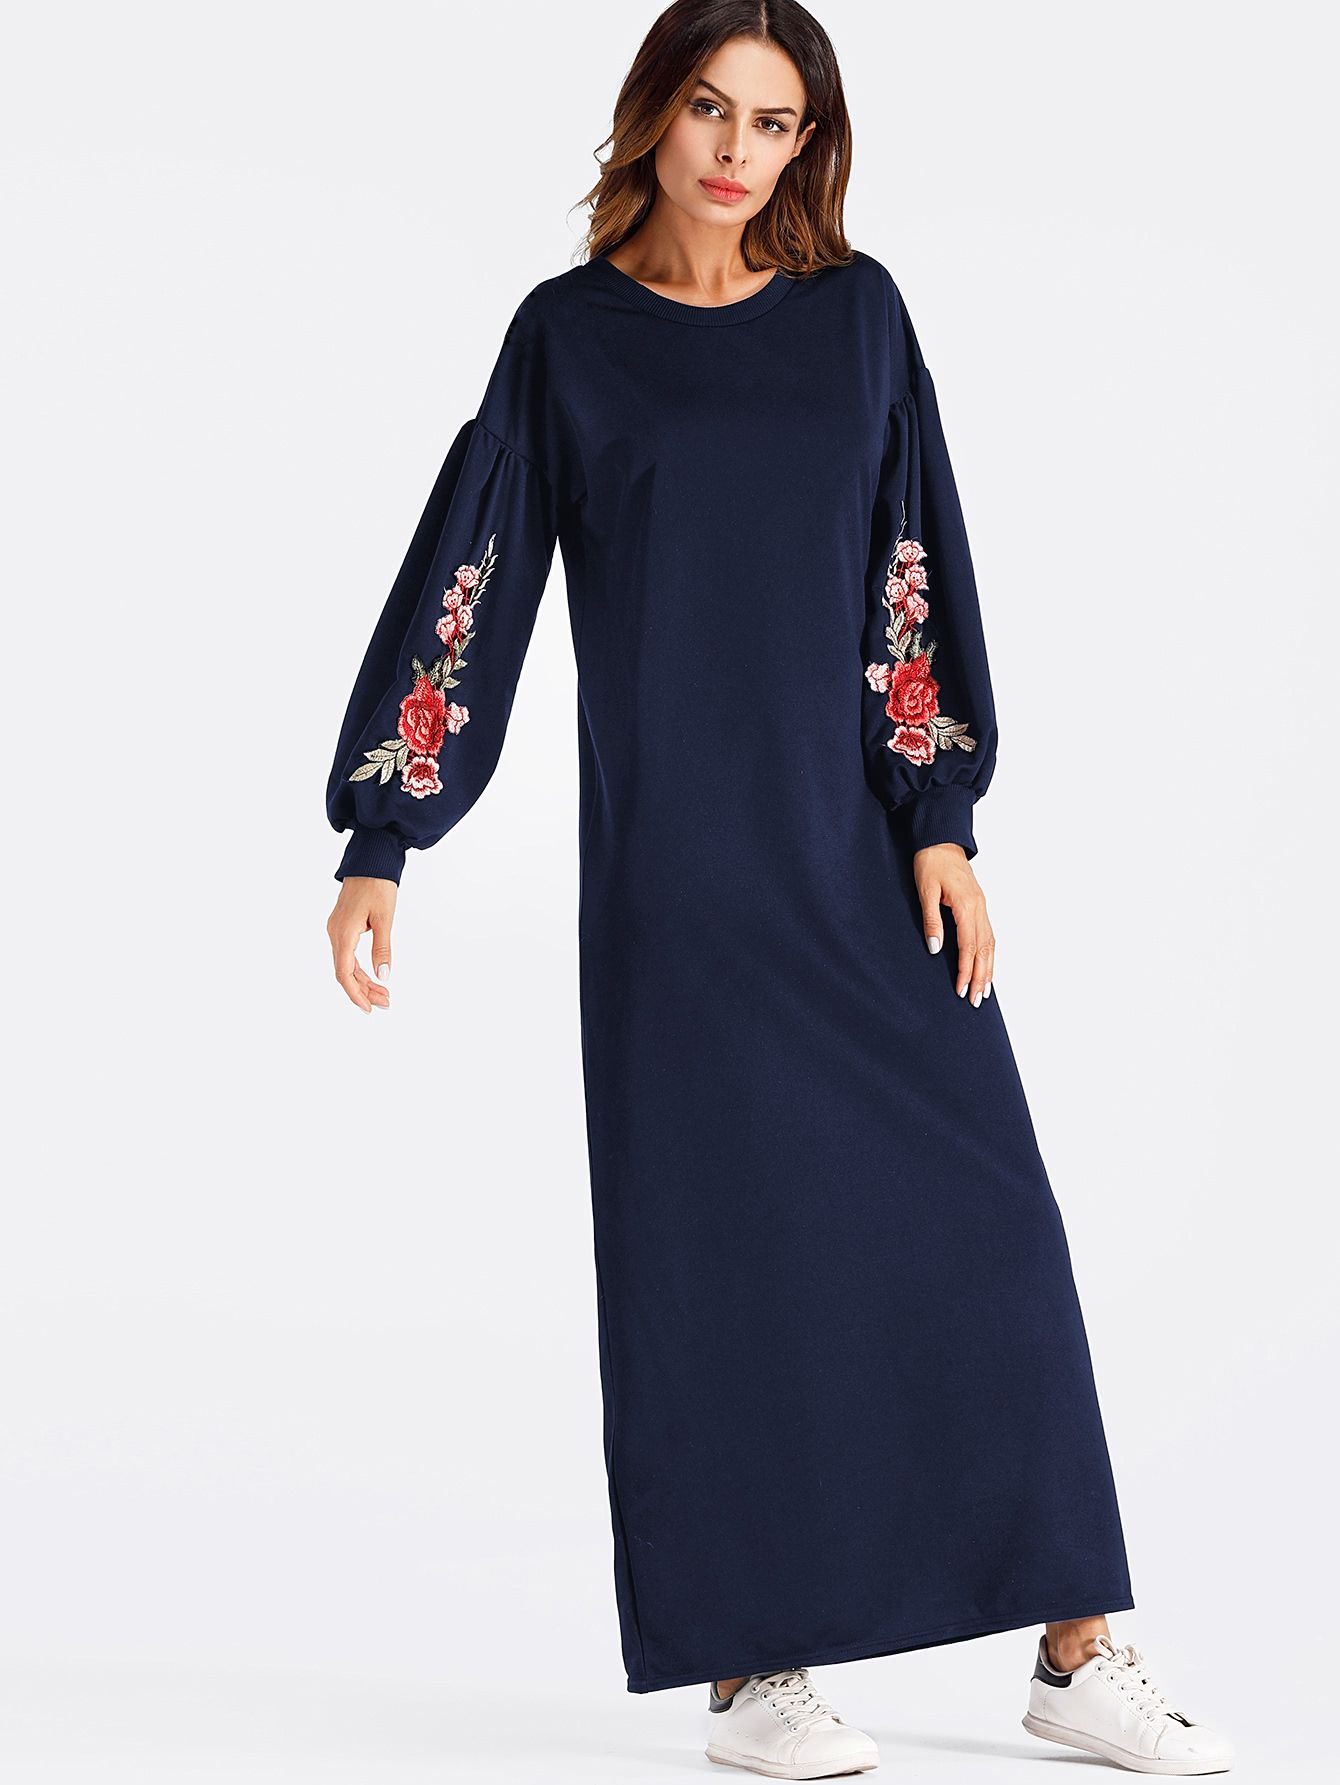 56d2d4cd75b6 Balloon Sleeve Embroidered Applique Dress -SheIn(Sheinside) | Abaya ...